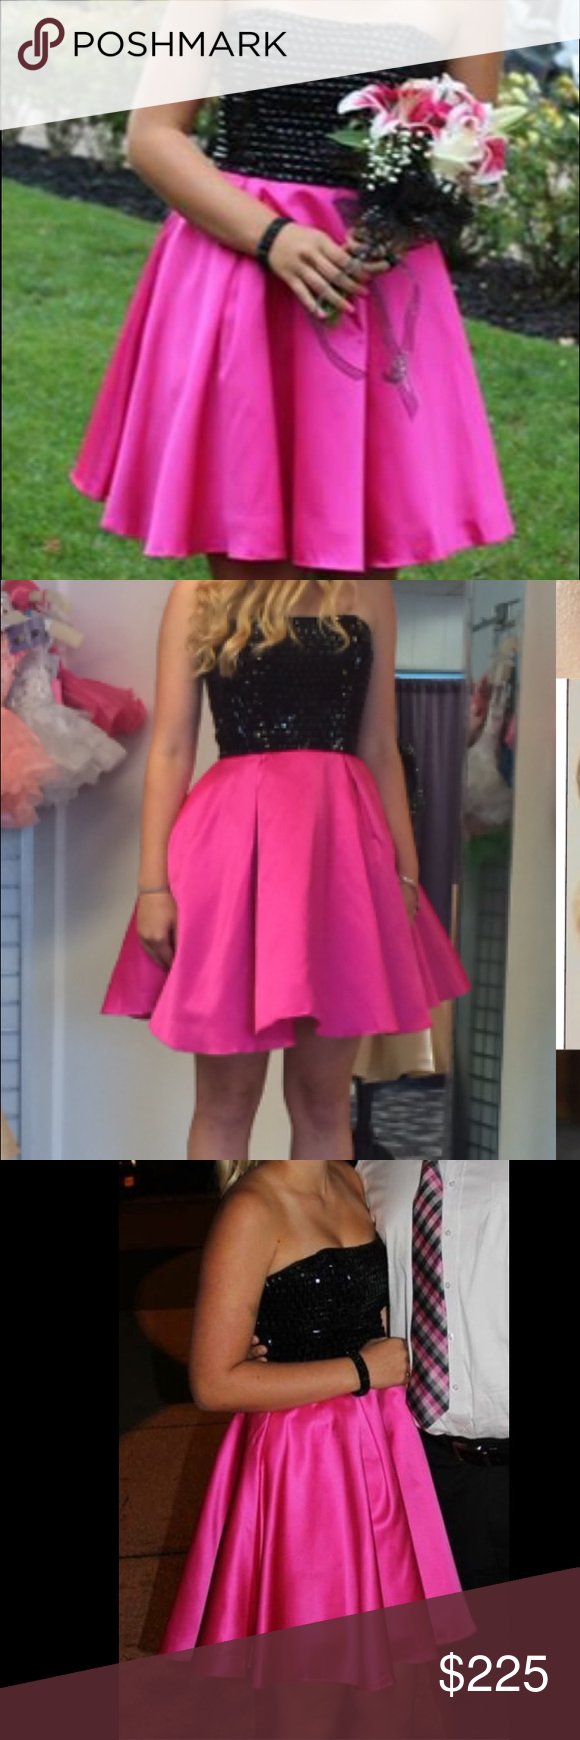 SHERRI HILL DRESS SIZE 6 Pink and Black Sherri Hill dress, size 6 selling for $200 Only worn for a few hours!! Sherri Hill Dresses Prom